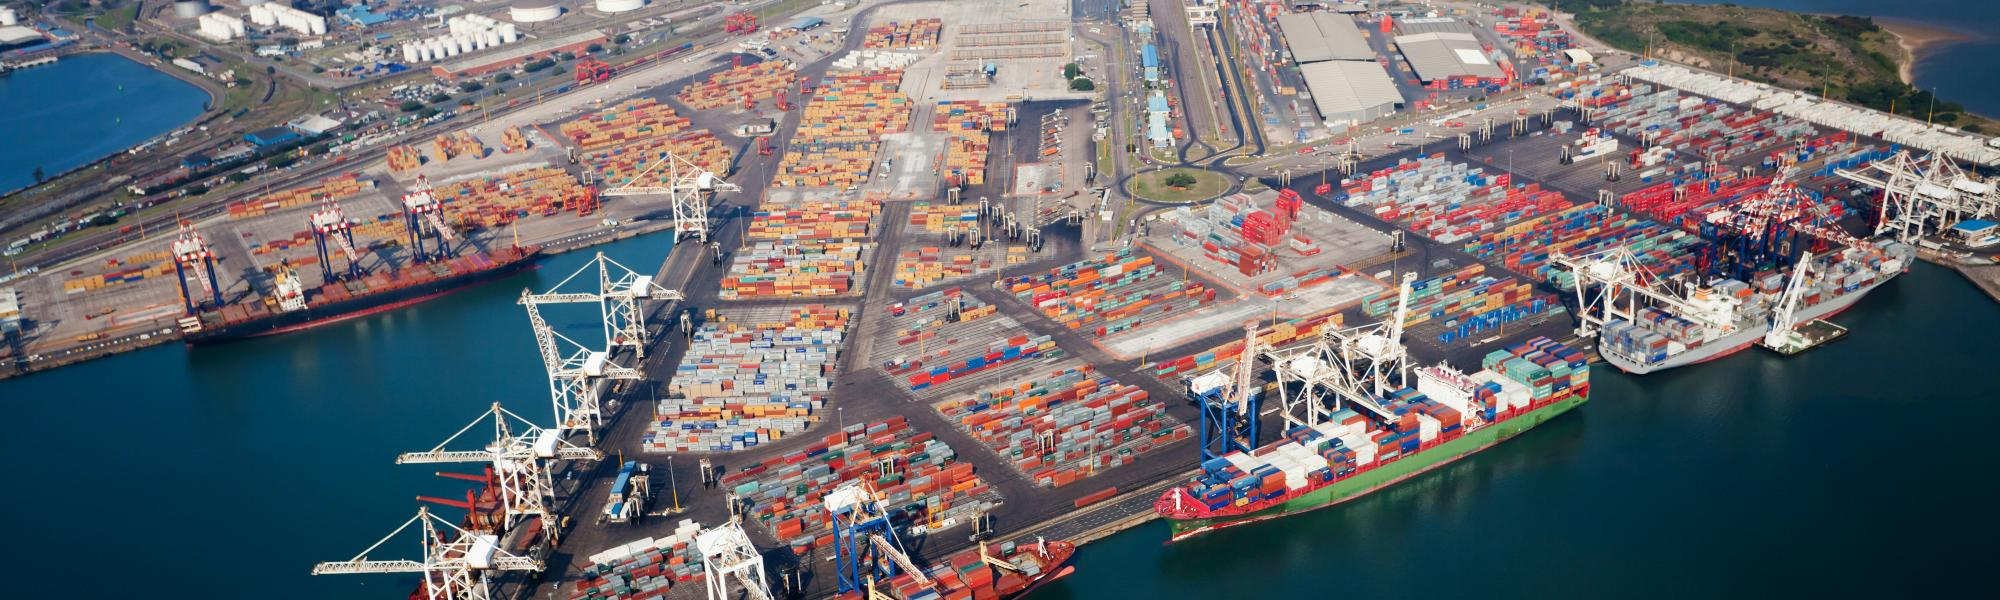 Port of Durban from above